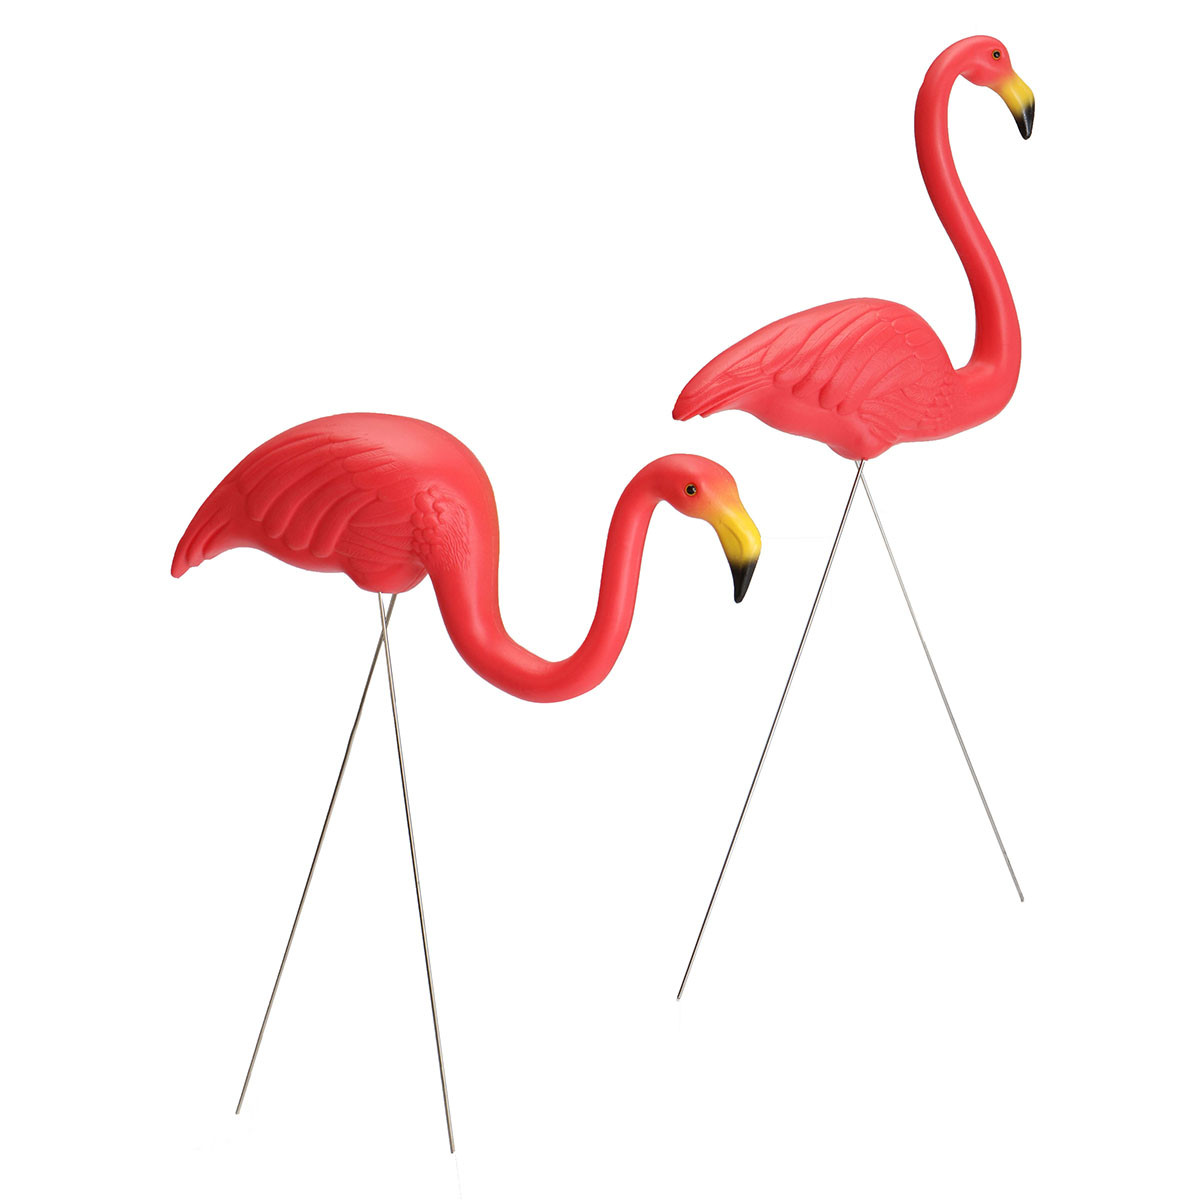 Plastic Red Flamingo Lawn Figurine Garden Yard Grassland Party Ornament Decorations